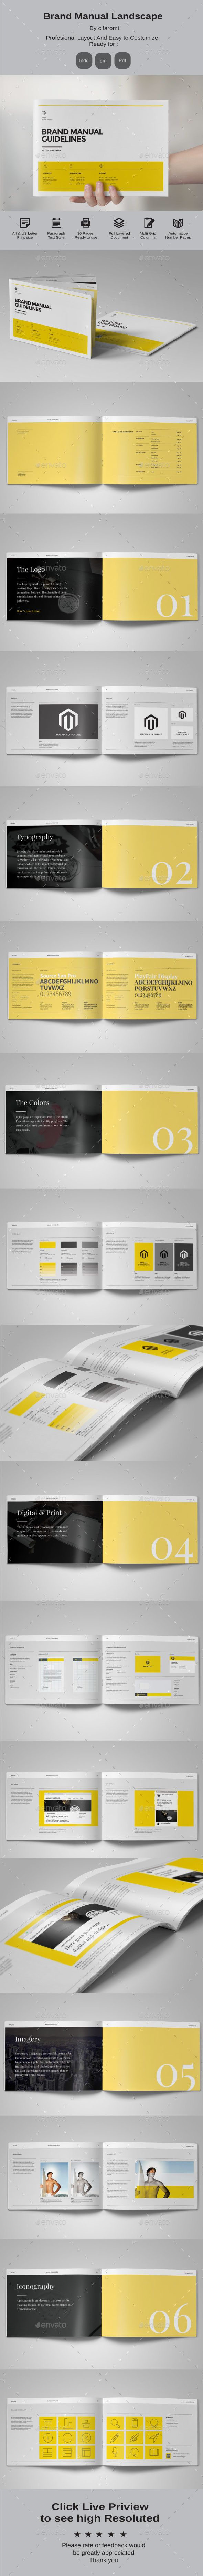 Minimal and Professional Brand Manual Landscape Brochure Template InDesign INDD…